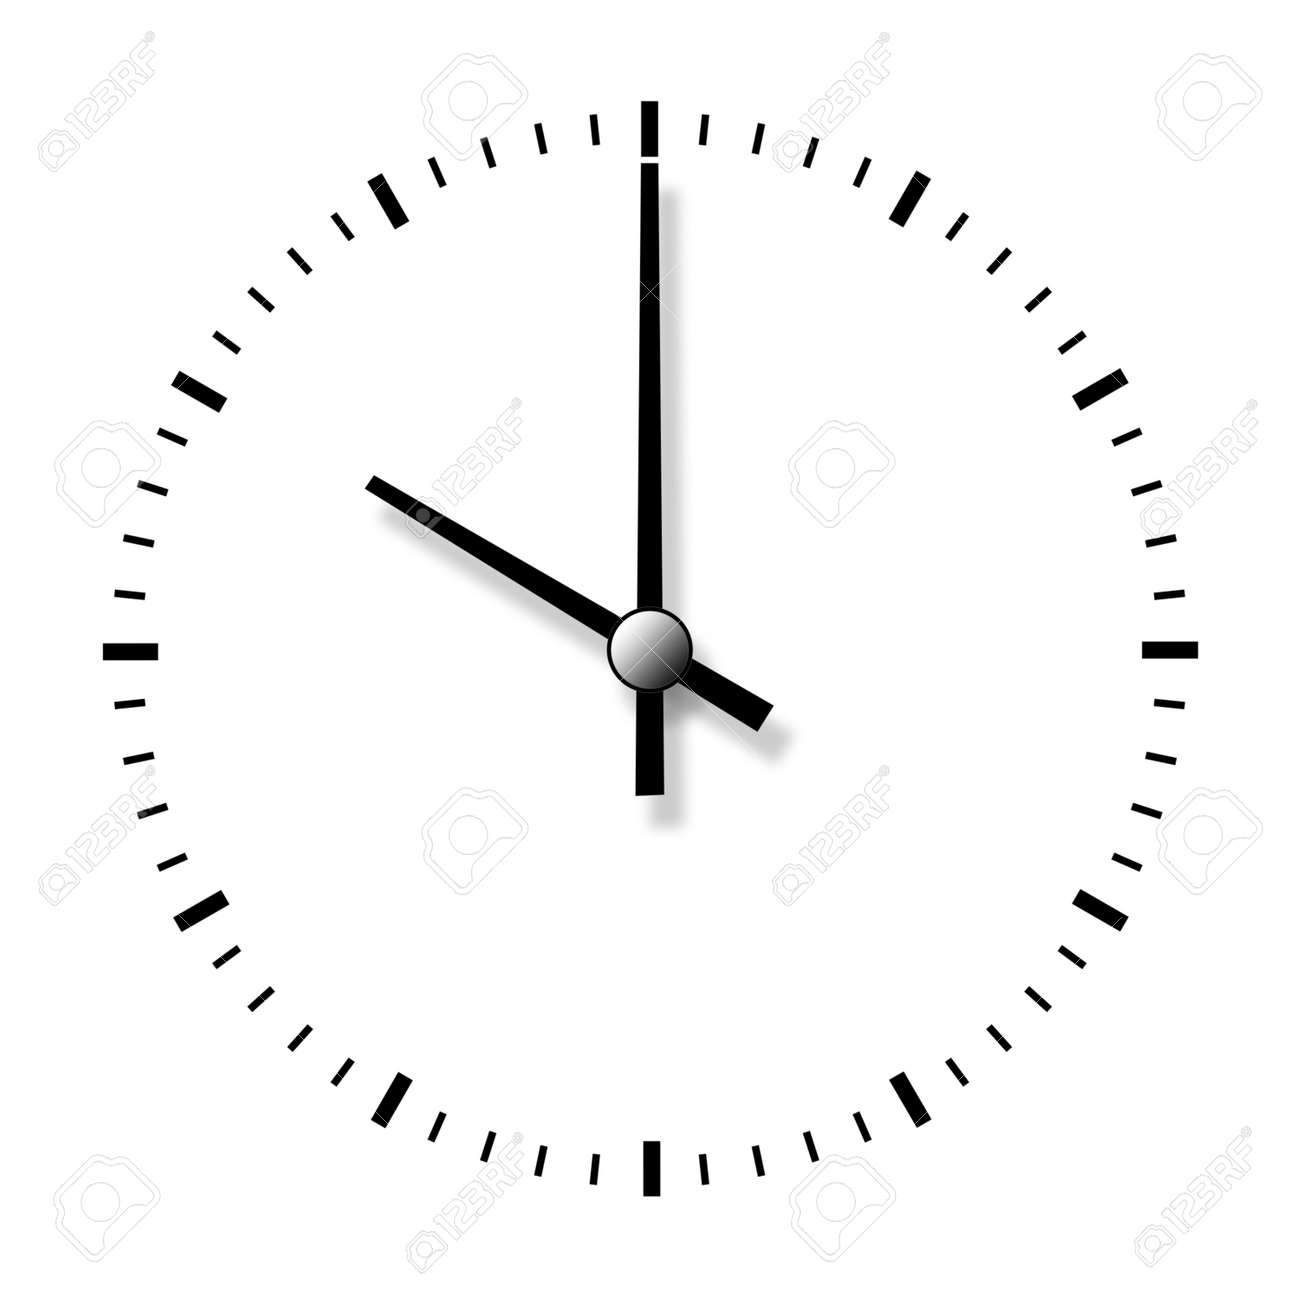 Clock Without Numbers Isolated On White Background Closeup Stock